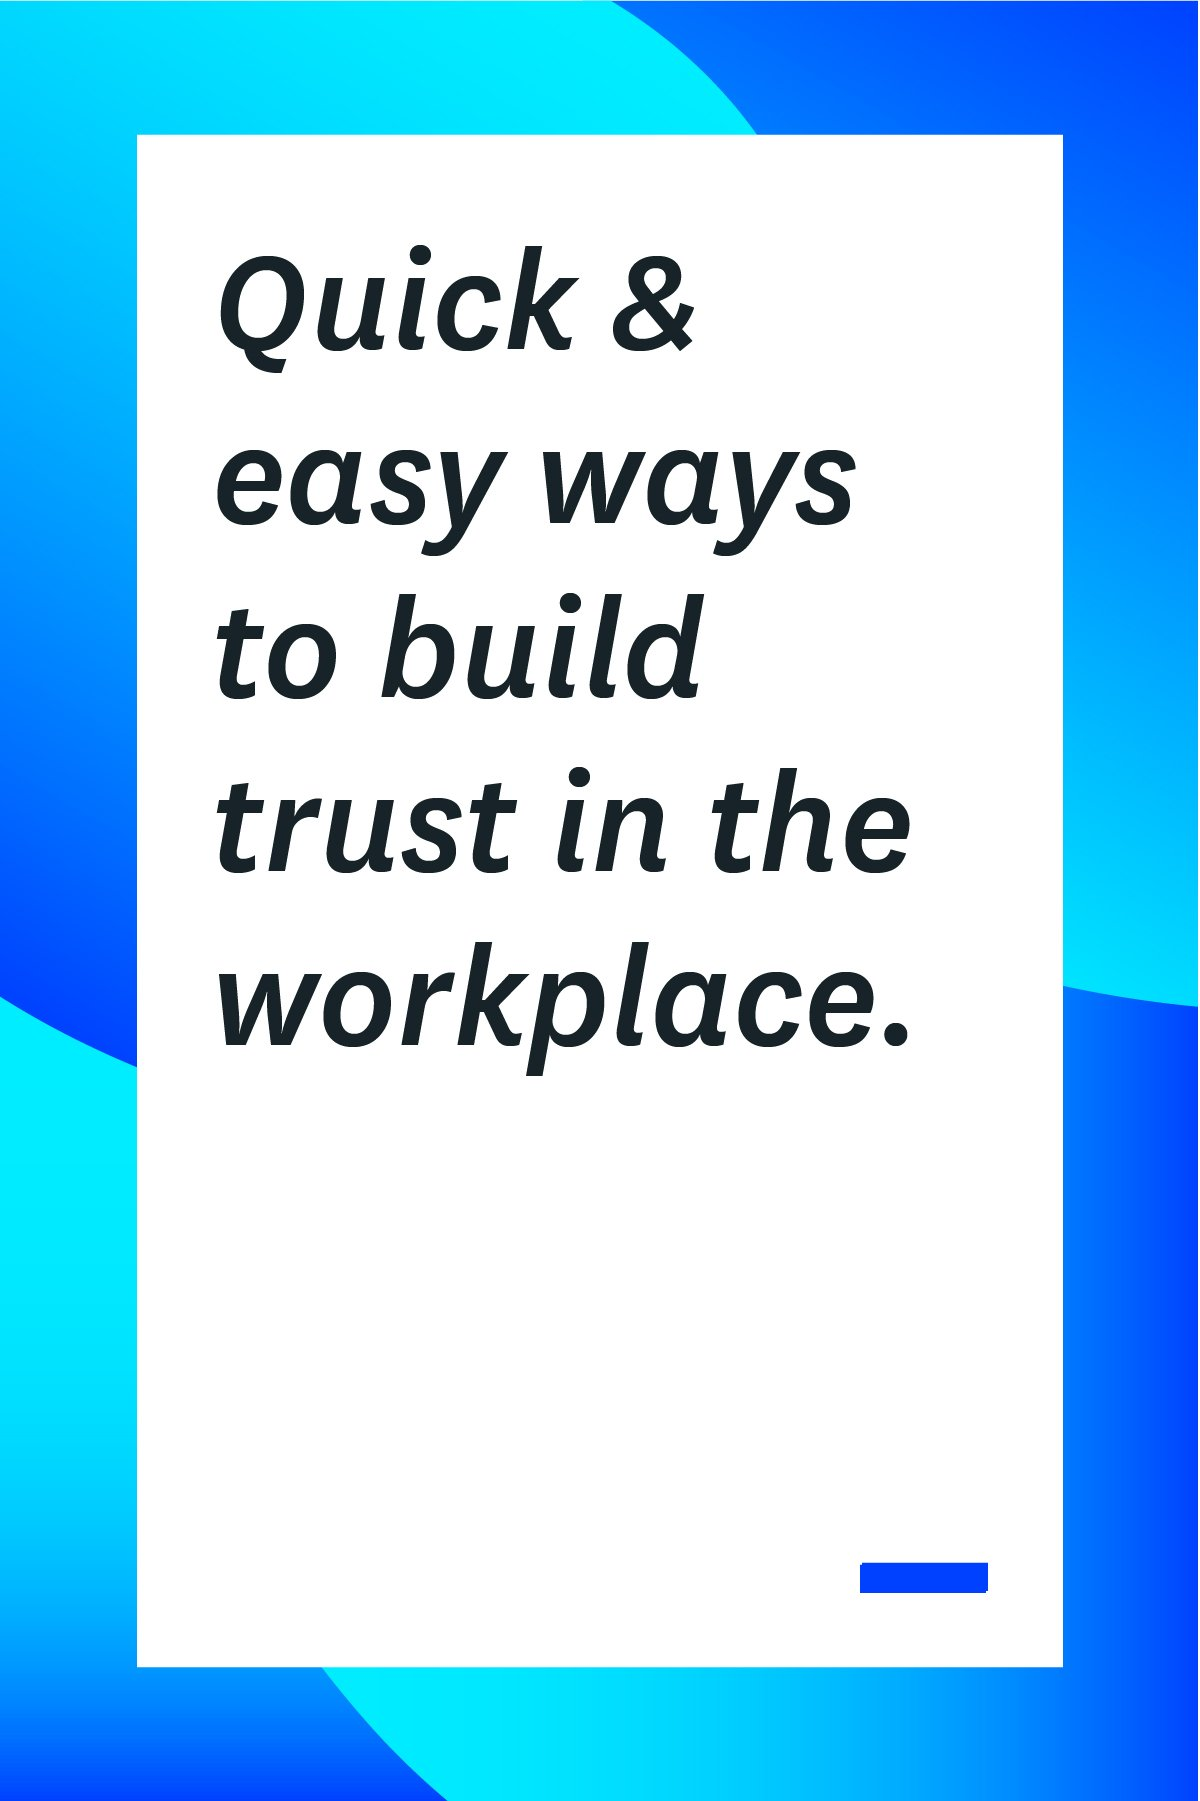 You need to build trust in the workplace if you want to motivate your team and improve productivity. These 12 tips will help you build trust with your team.